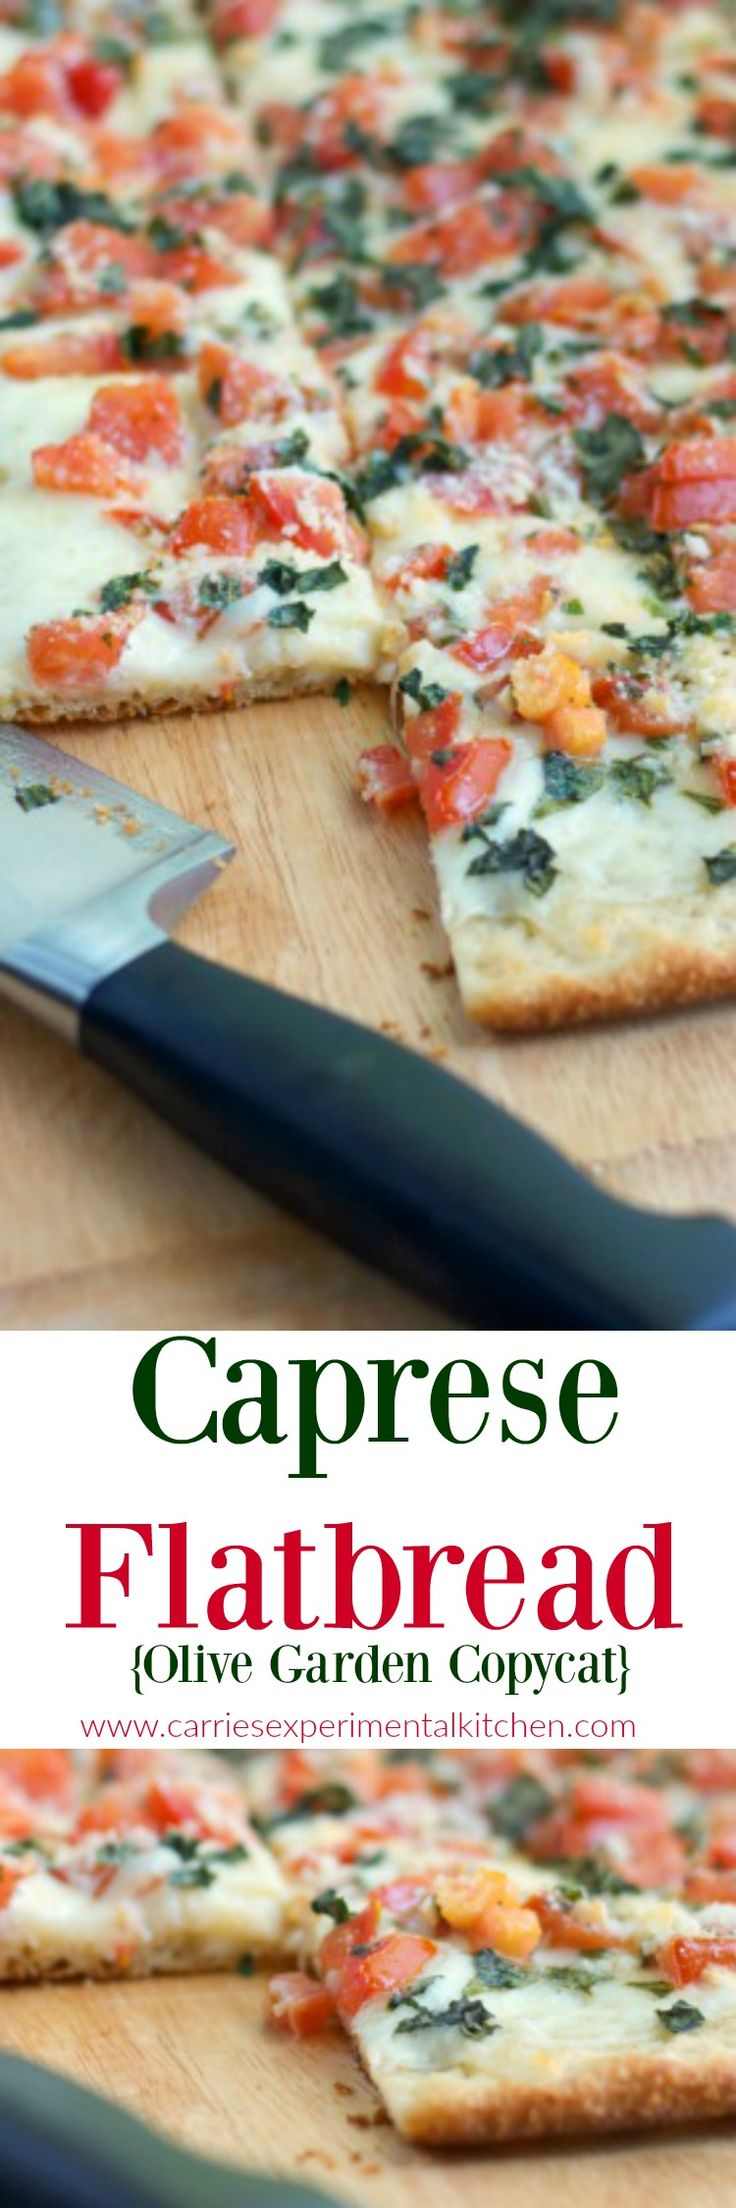 Make this Olive Garden favorite appetizer, Caprese Flatbread made with fresh tomatoes, basil and mozzarella cheese at home. Perfect for pizza night too.